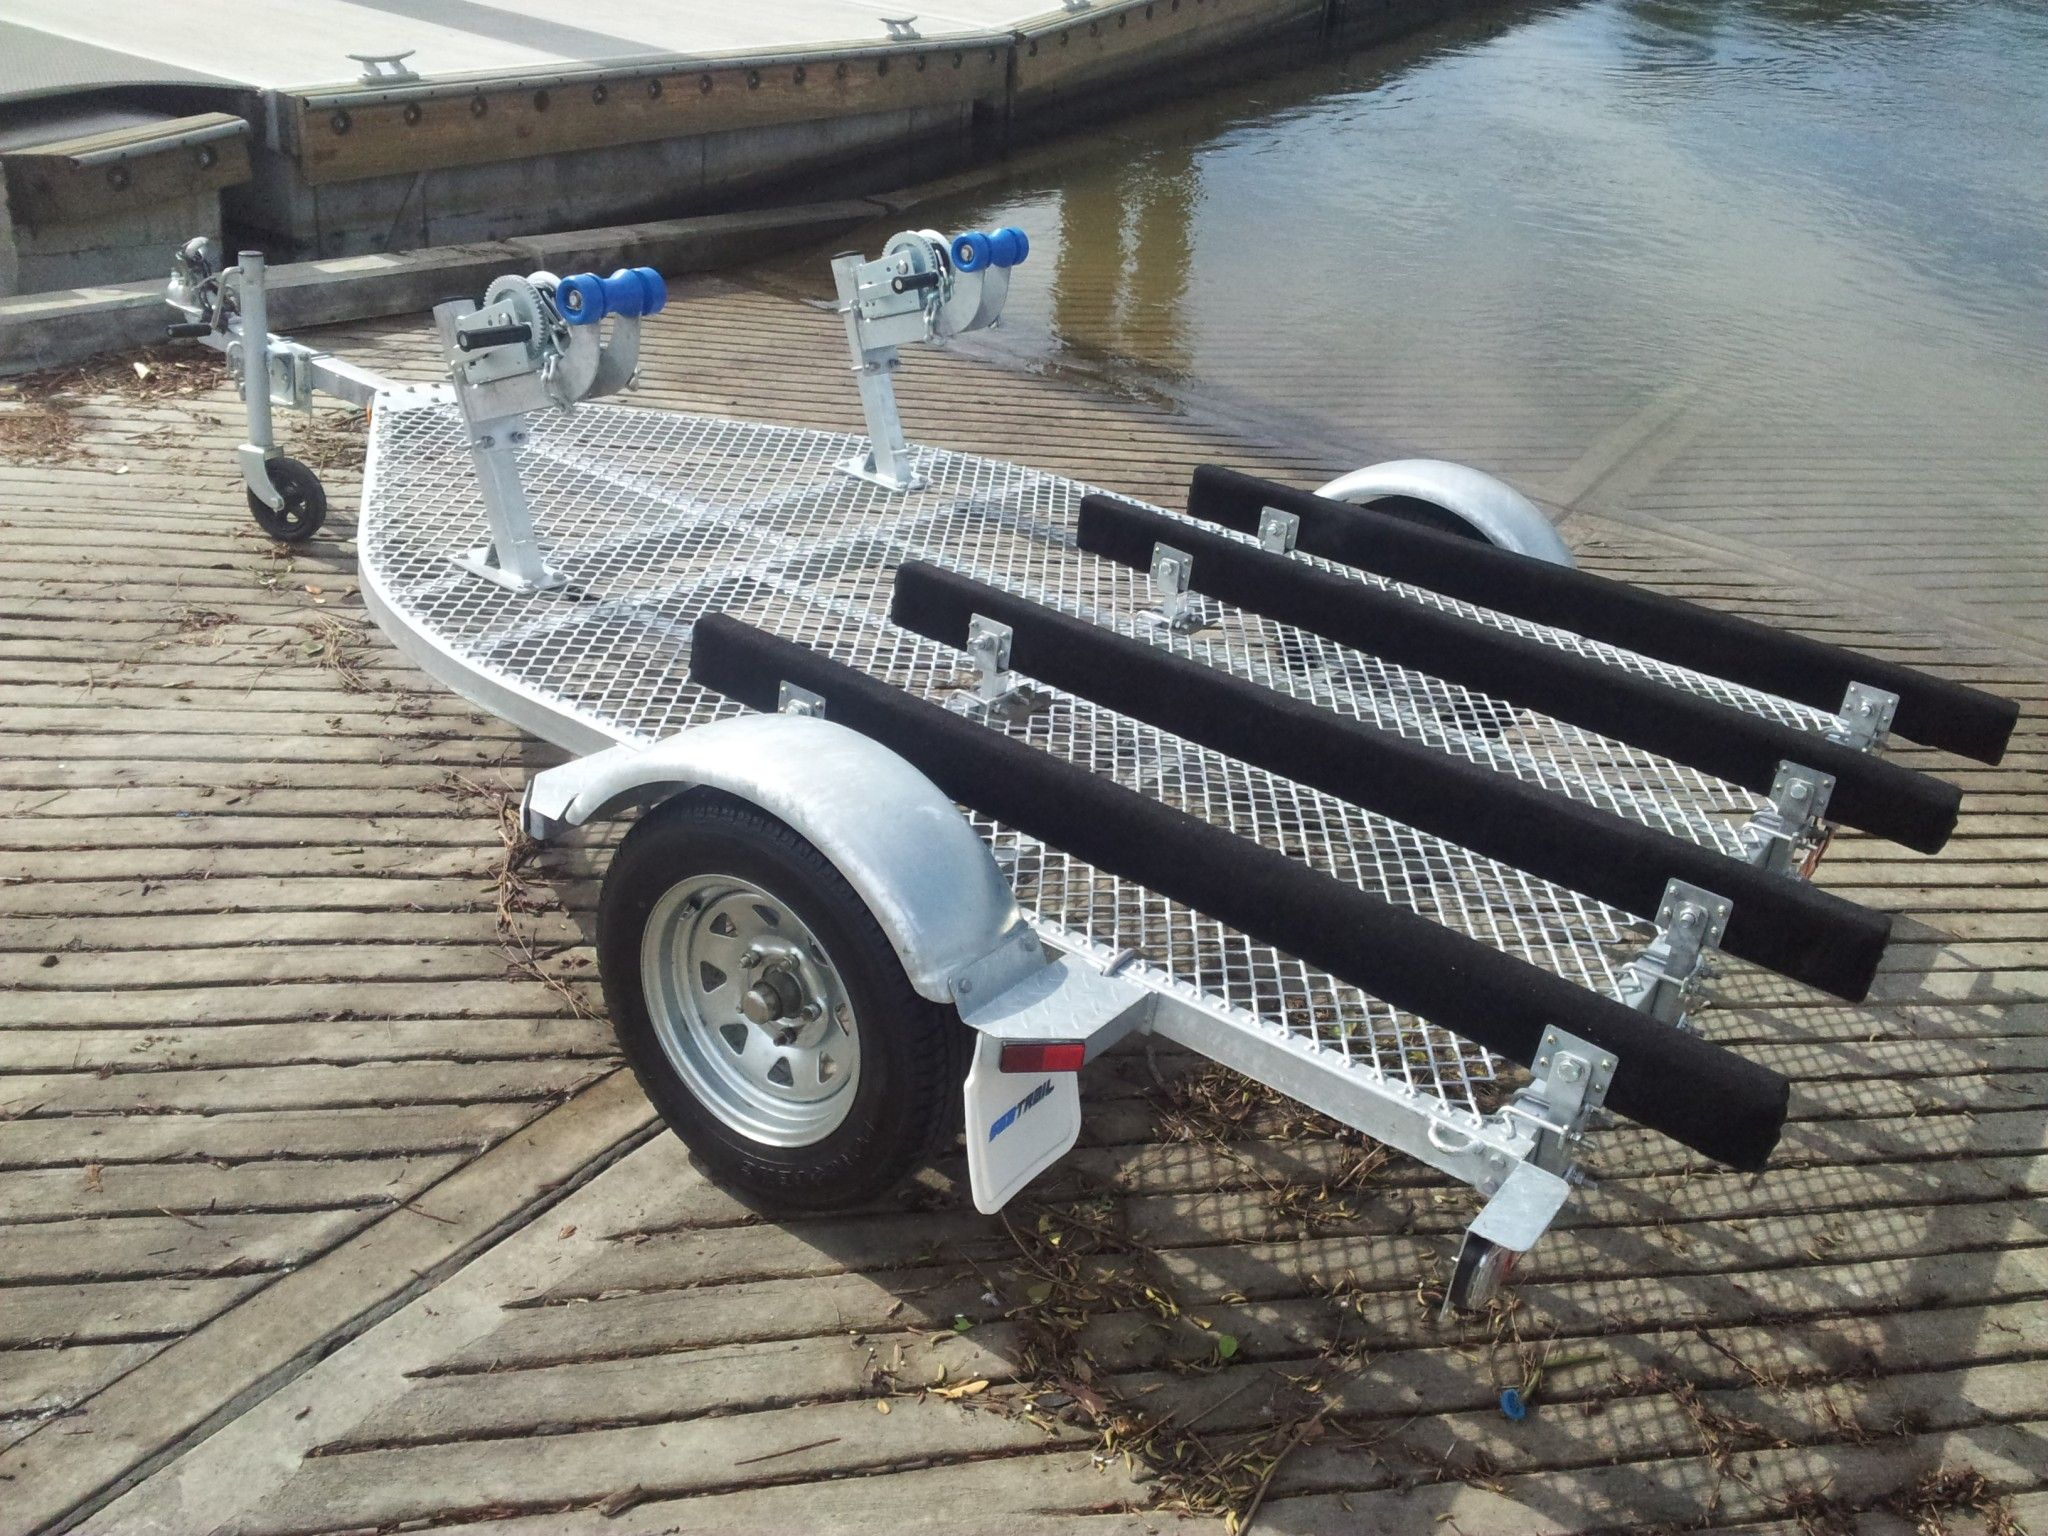 Standard Features Double Stand Up Pwc Trailer Fits 2 Stand Up Jet Ski S Side By Side Black Carpeted Skids Double Web Strap Jet Ski Trailer Jet Ski Trailer